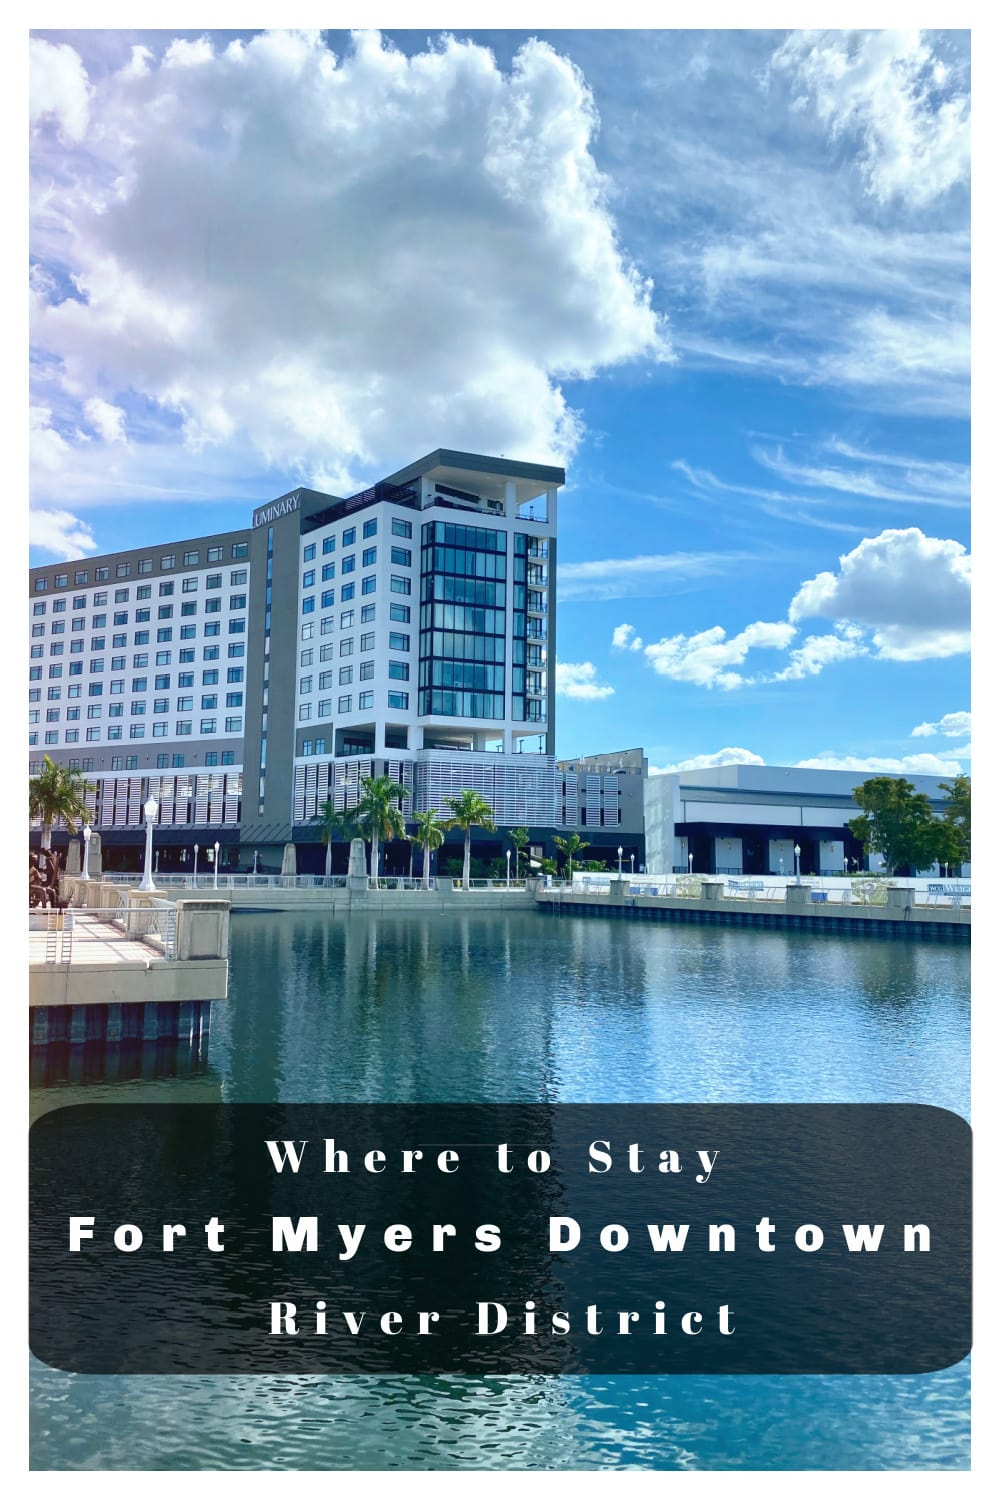 Where to stay in Fort Myers downtown.